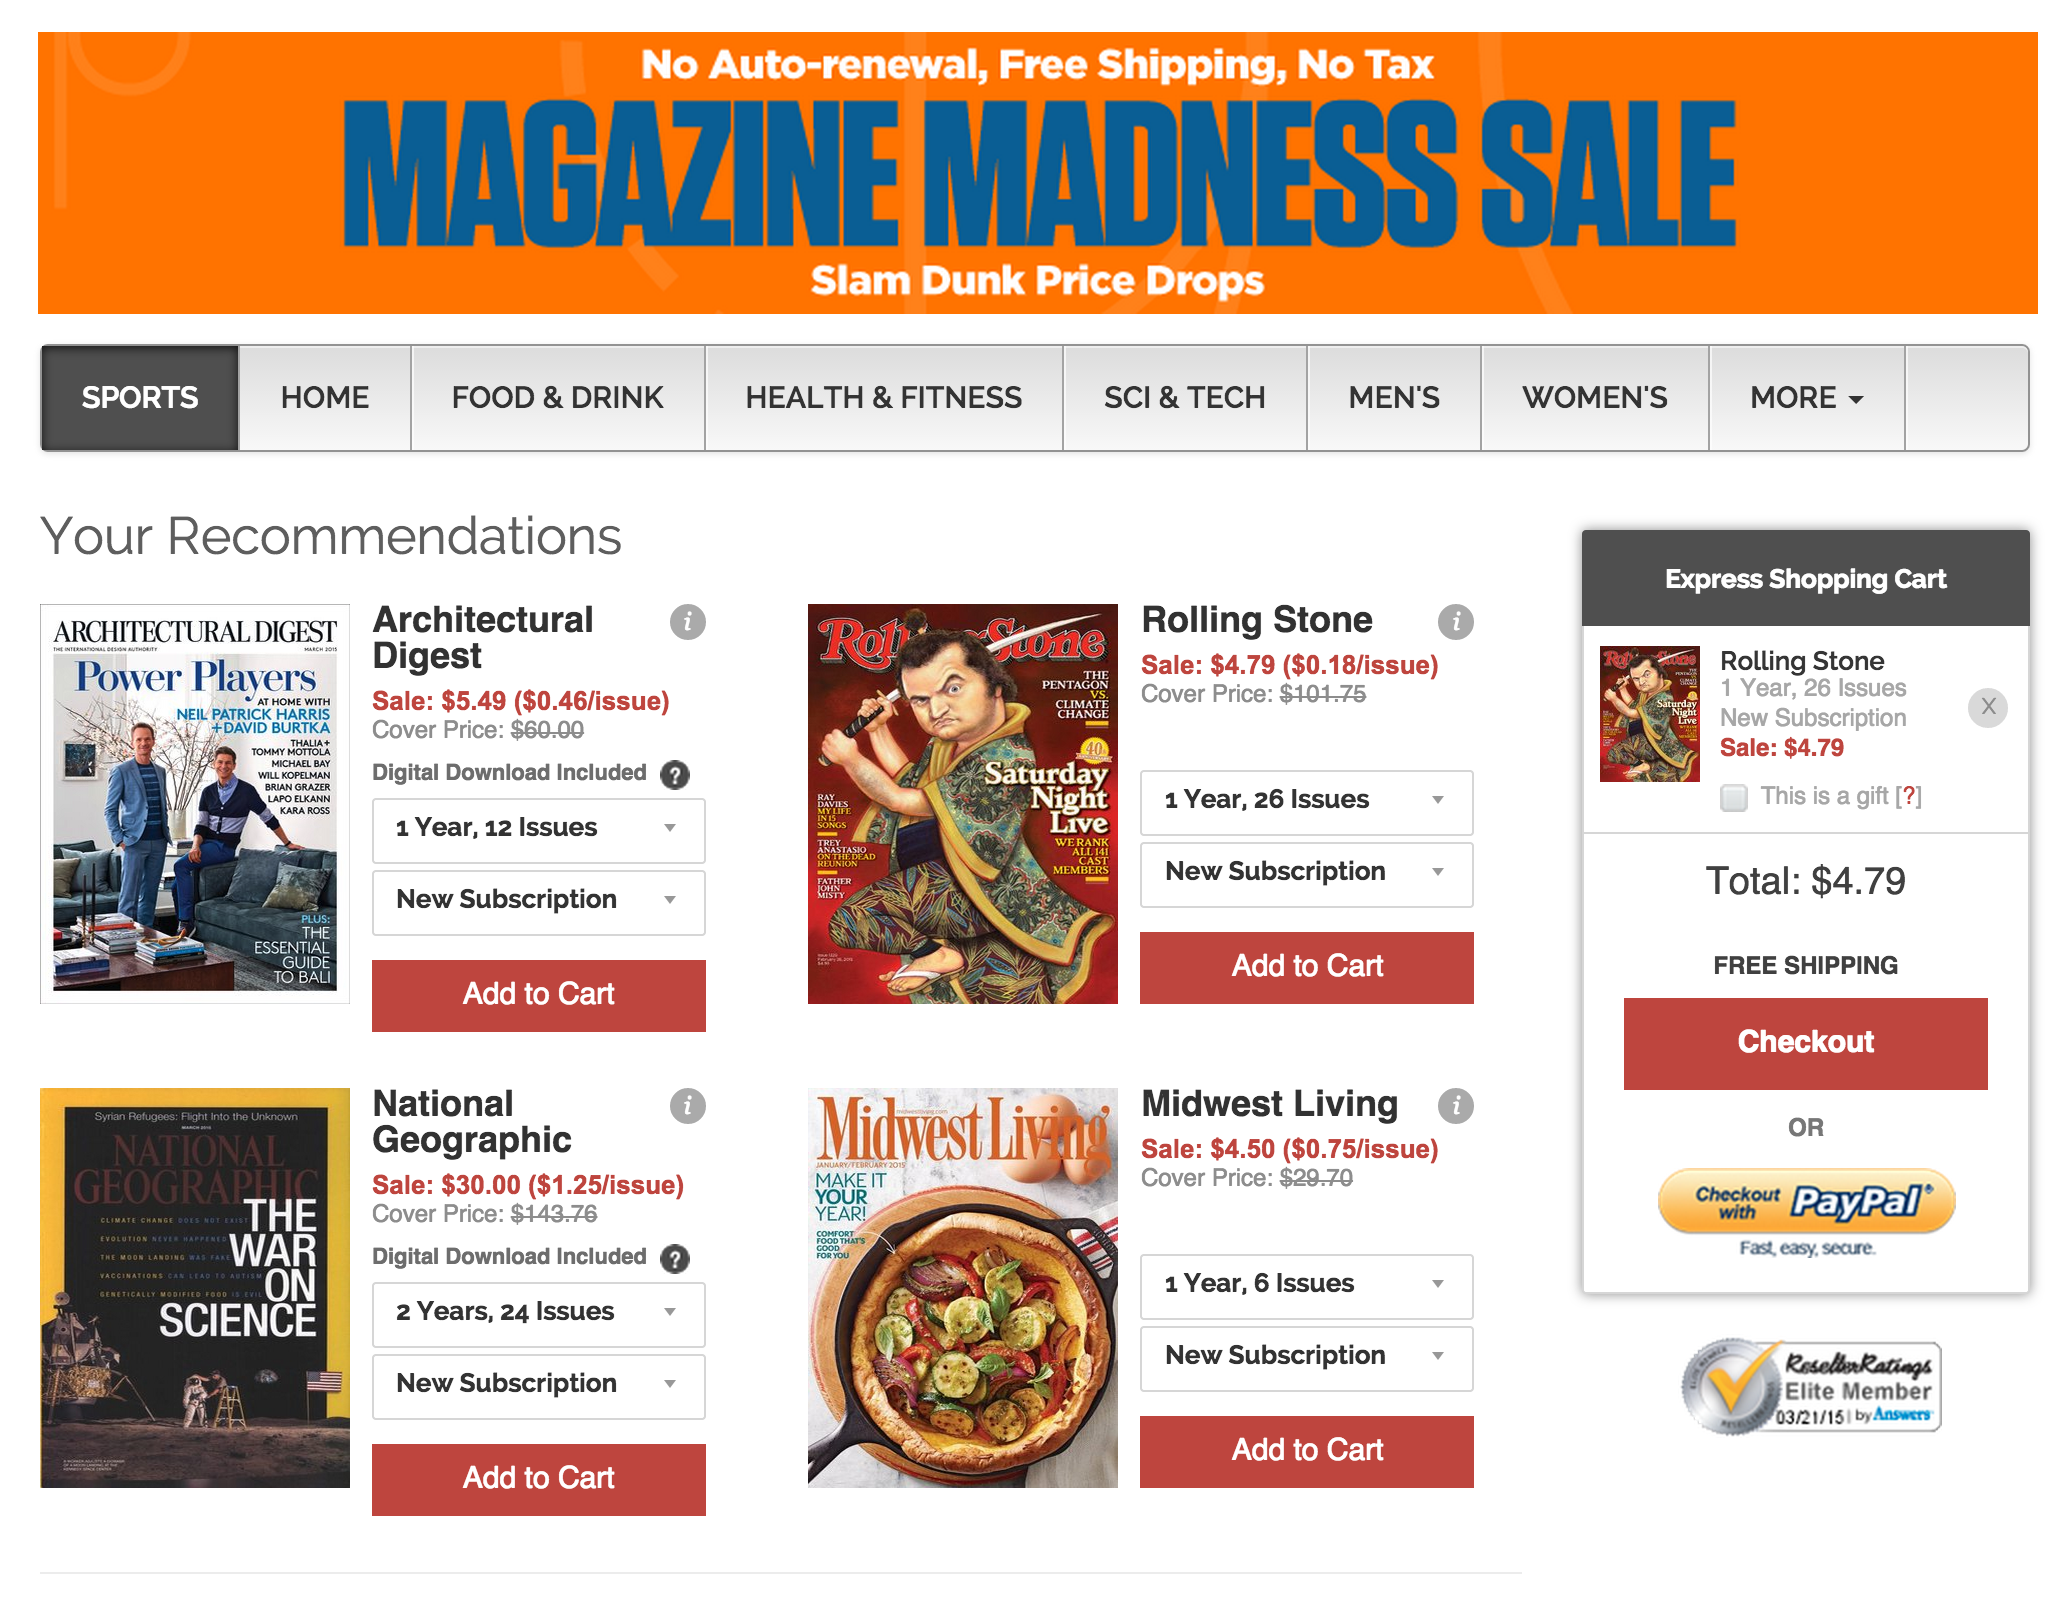 Magazine subs from $3.50/yr: Maxim, Wired, GQ, Rolling Stone ...